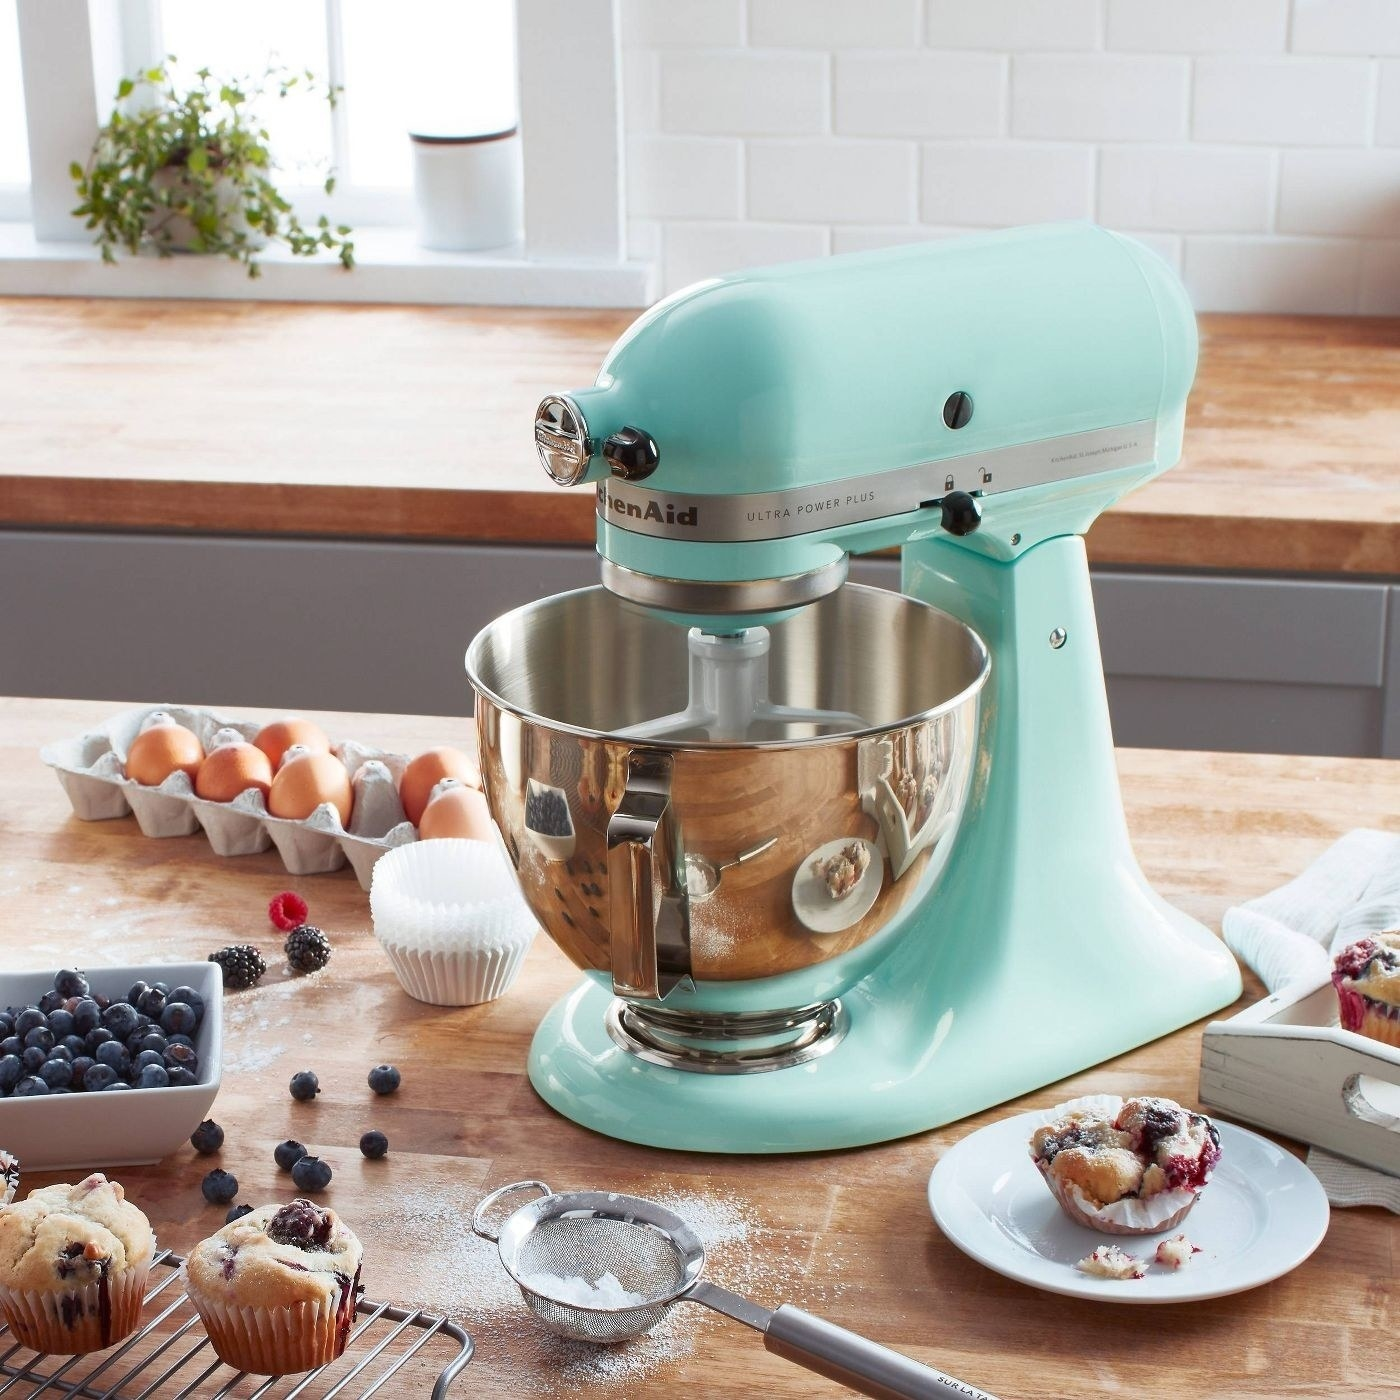 the aqua stand mixer on a counter with blueberry muffins